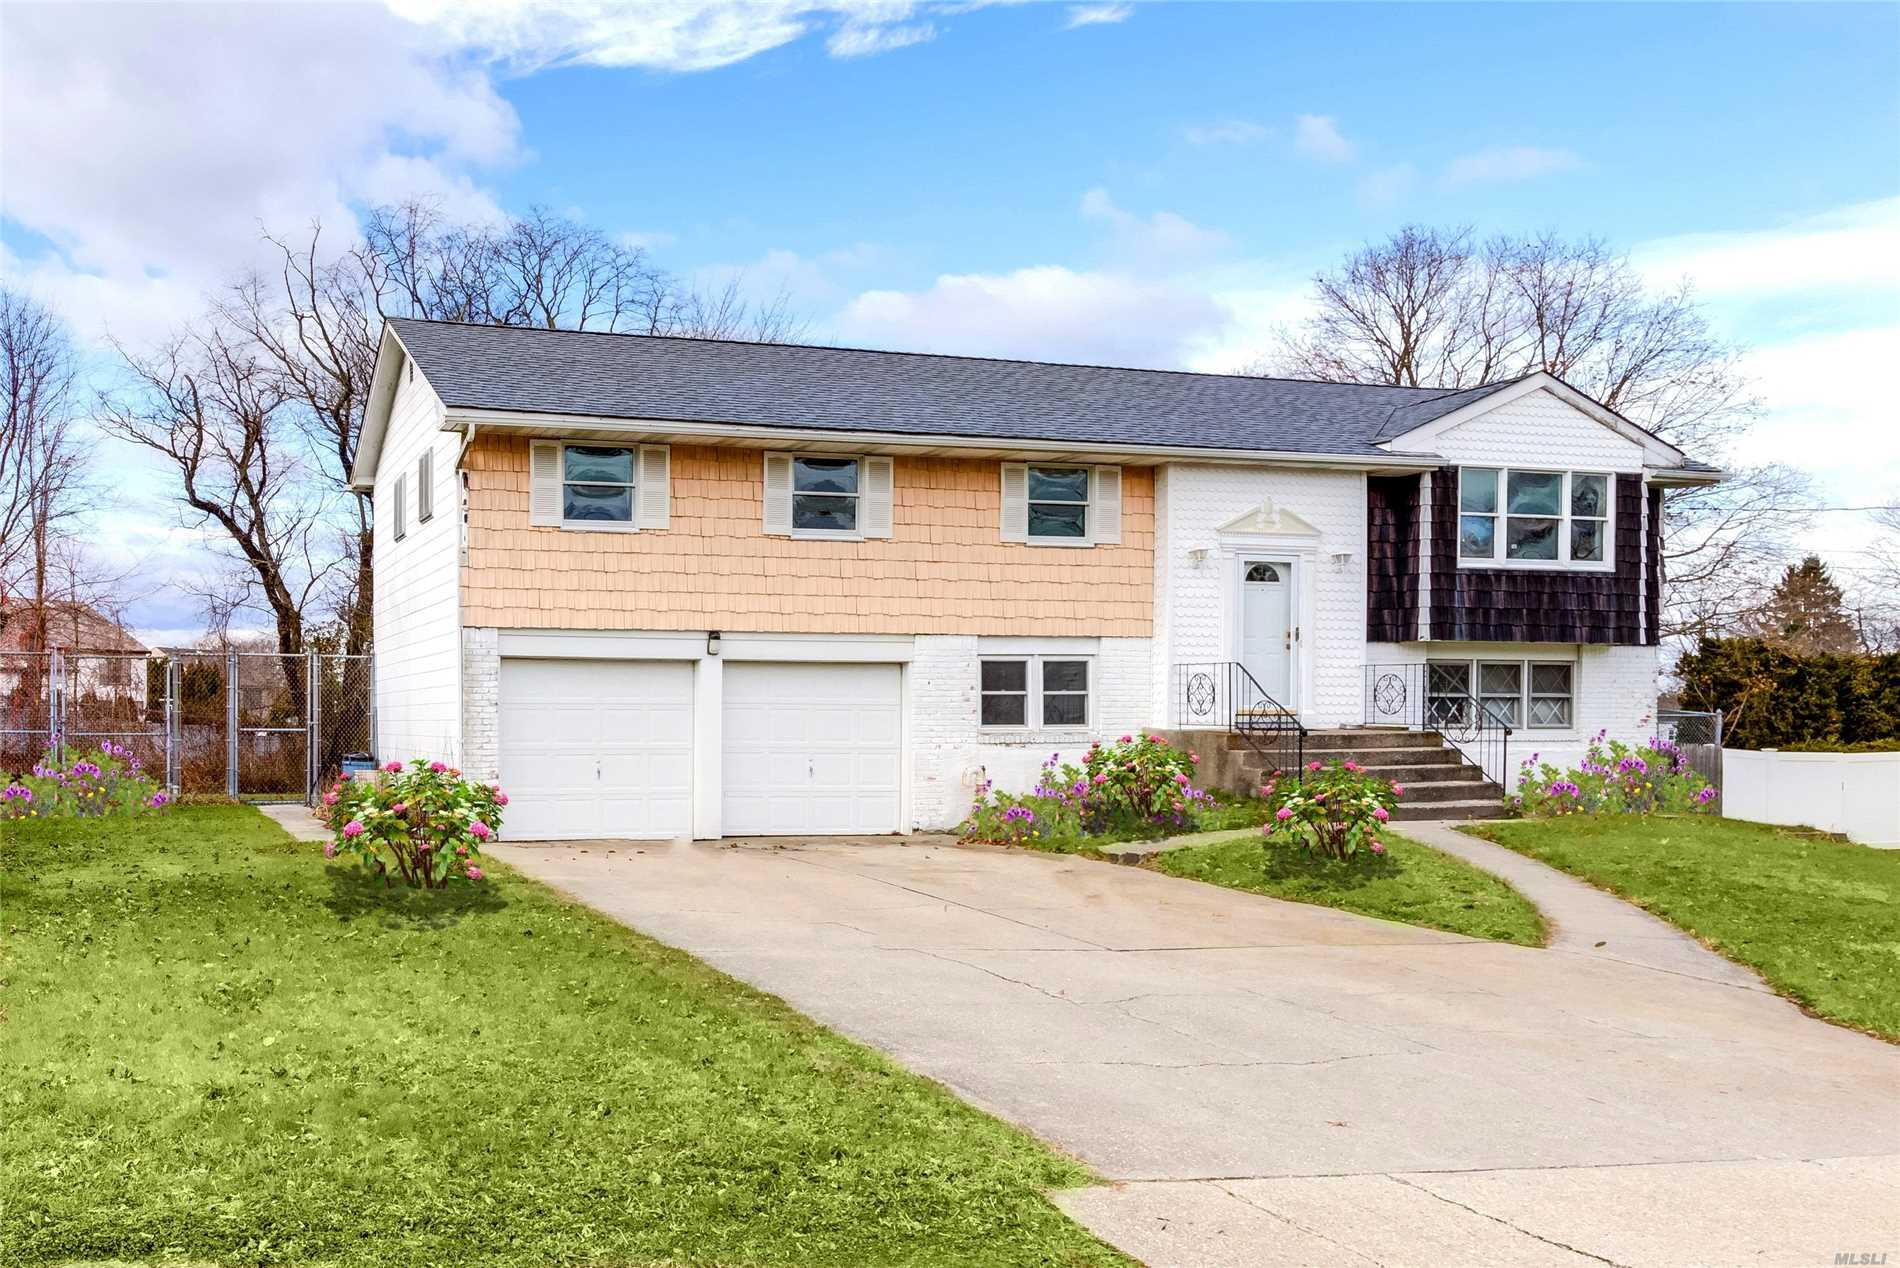 Photo of home for sale at 72 Atlantic Pl, Hauppauge NY